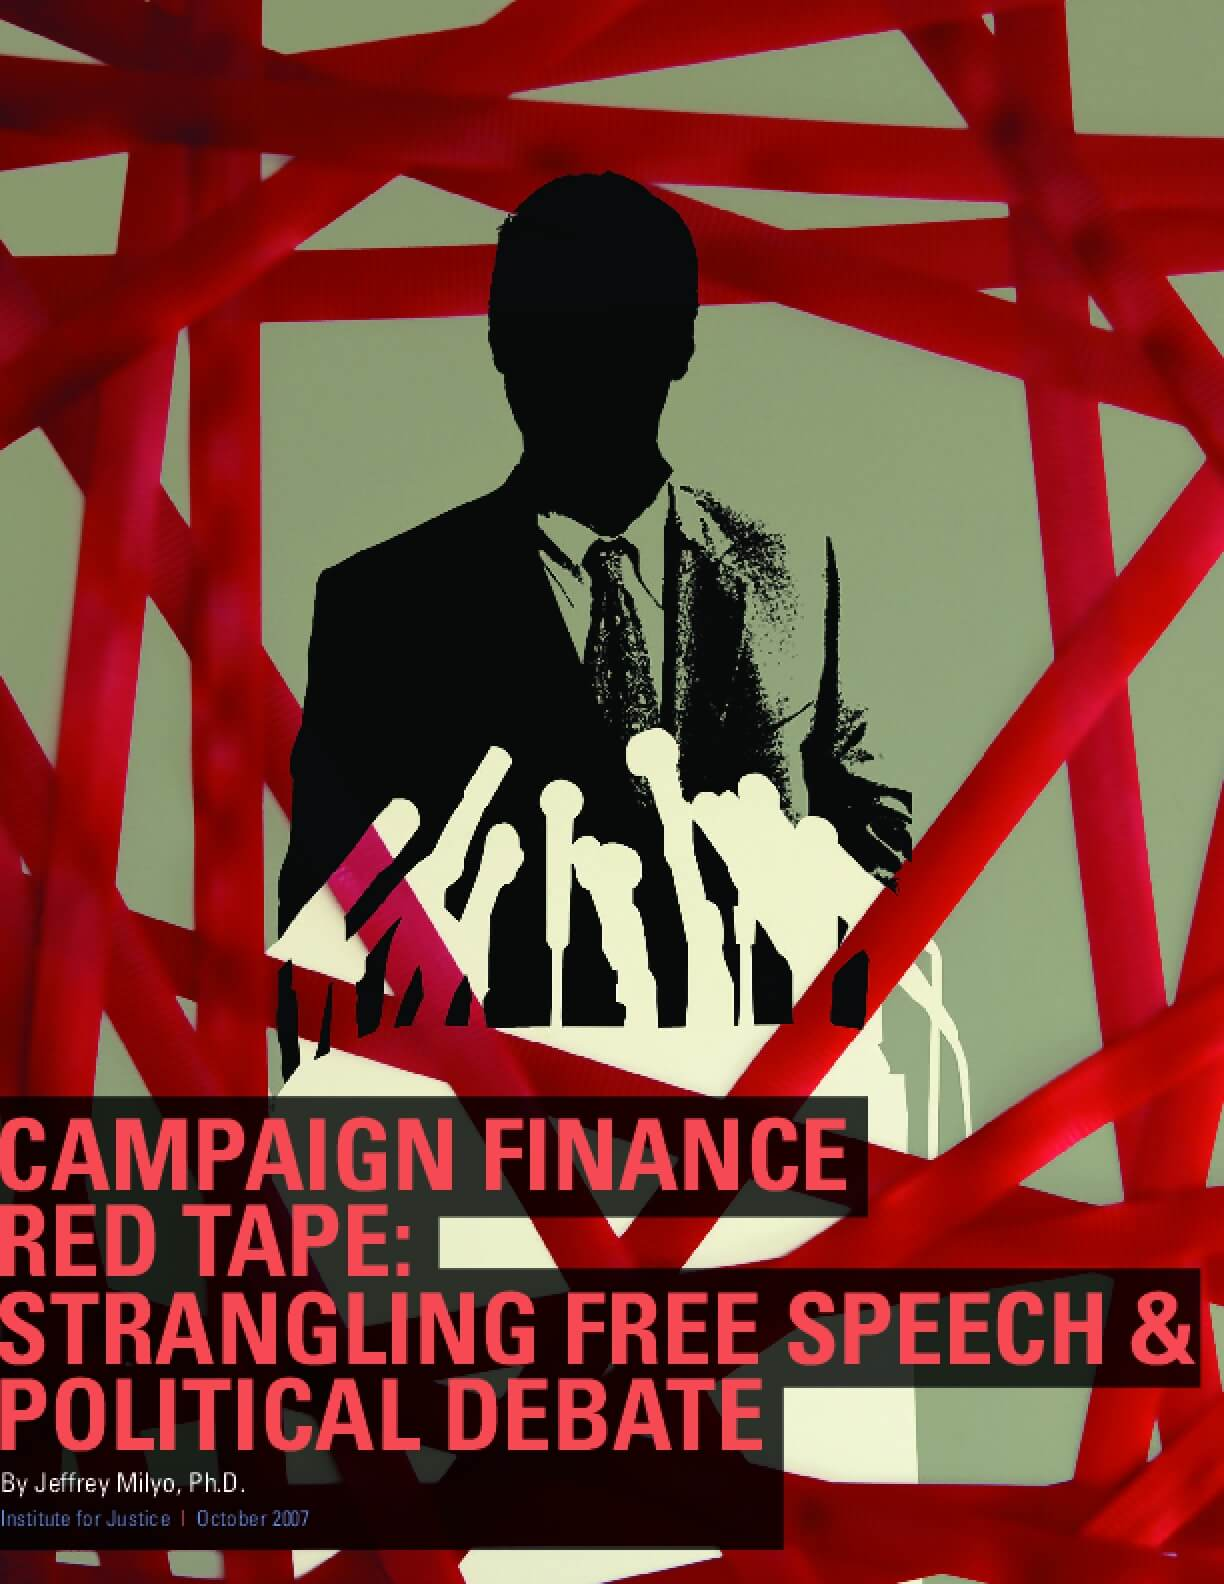 Campaign Finance Red Tape: Strangling Free Speech and Political Debate